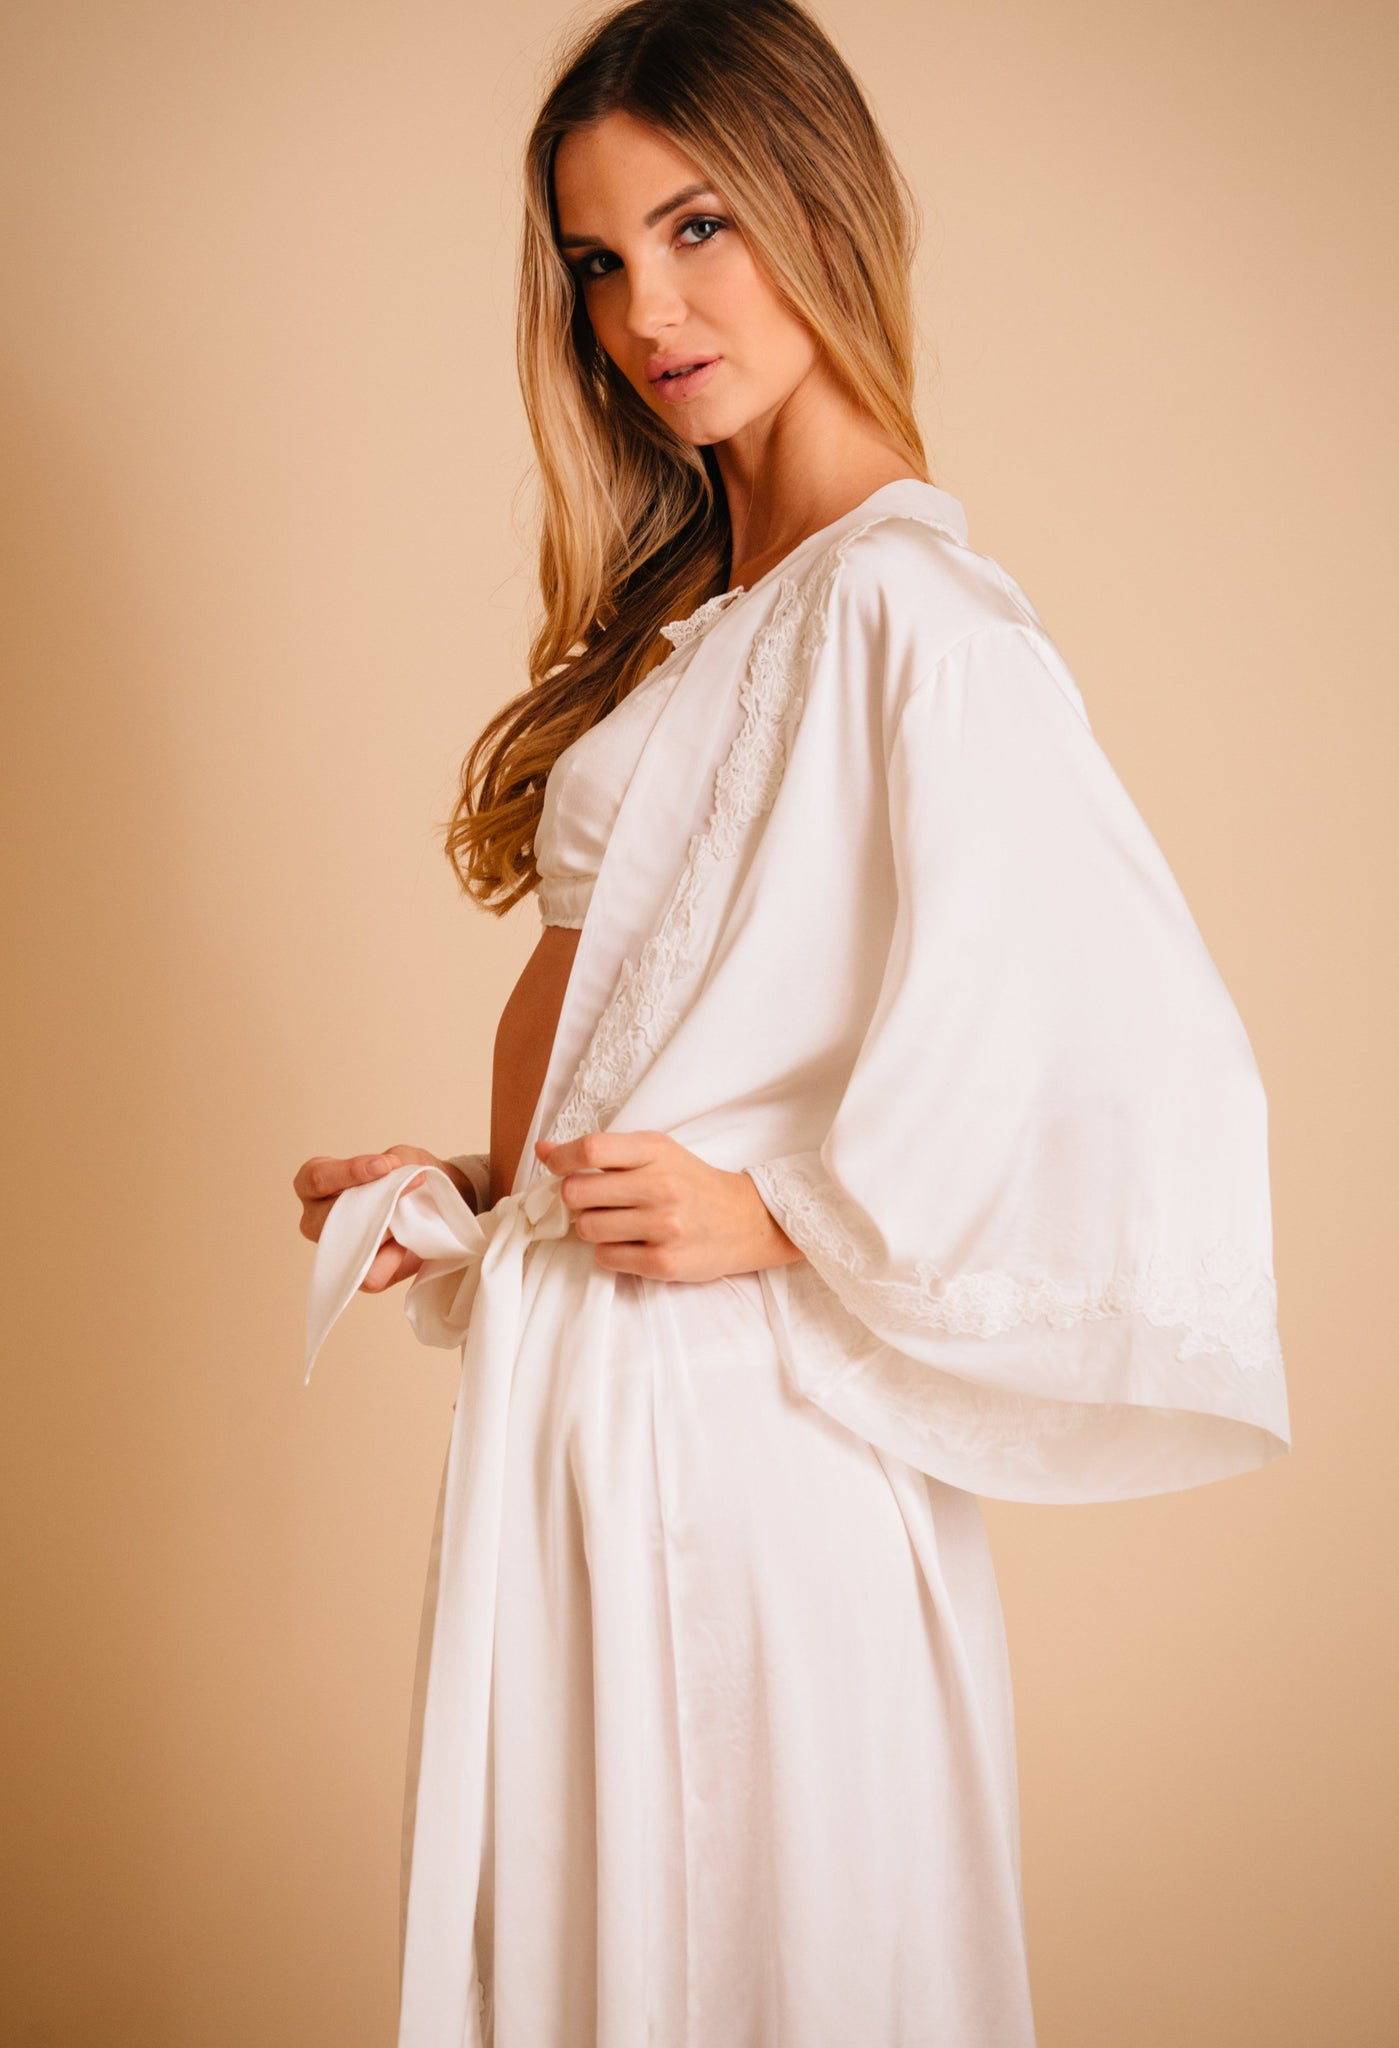 Lace trim silk wedding robe